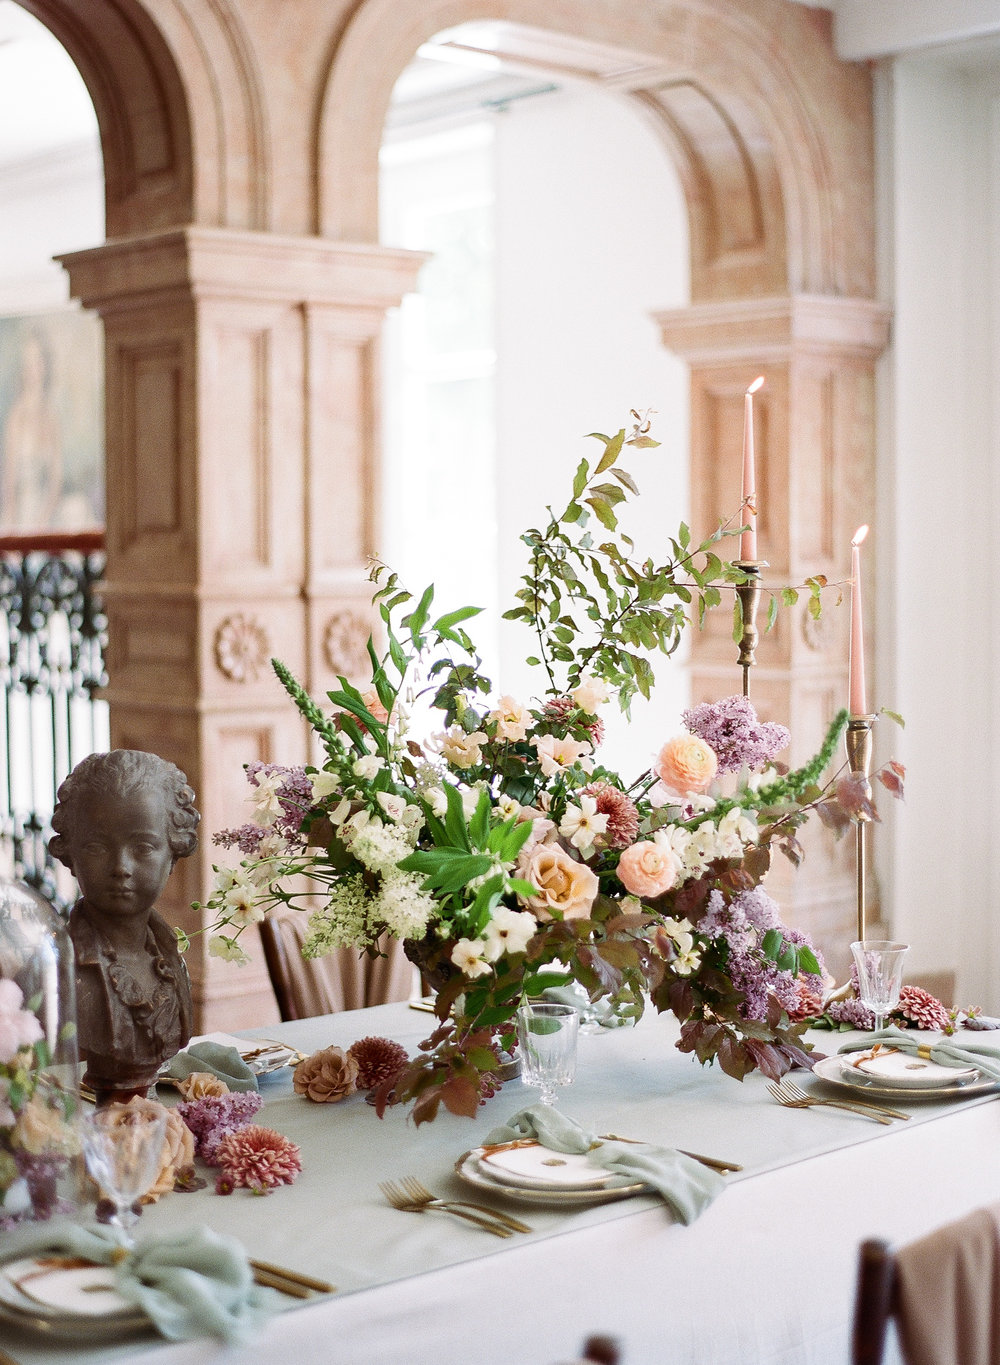 A wedding reception table at Chateau de Varennes, decorated with a sculpture bust and bell jar florals; Sylvie Gil Photography